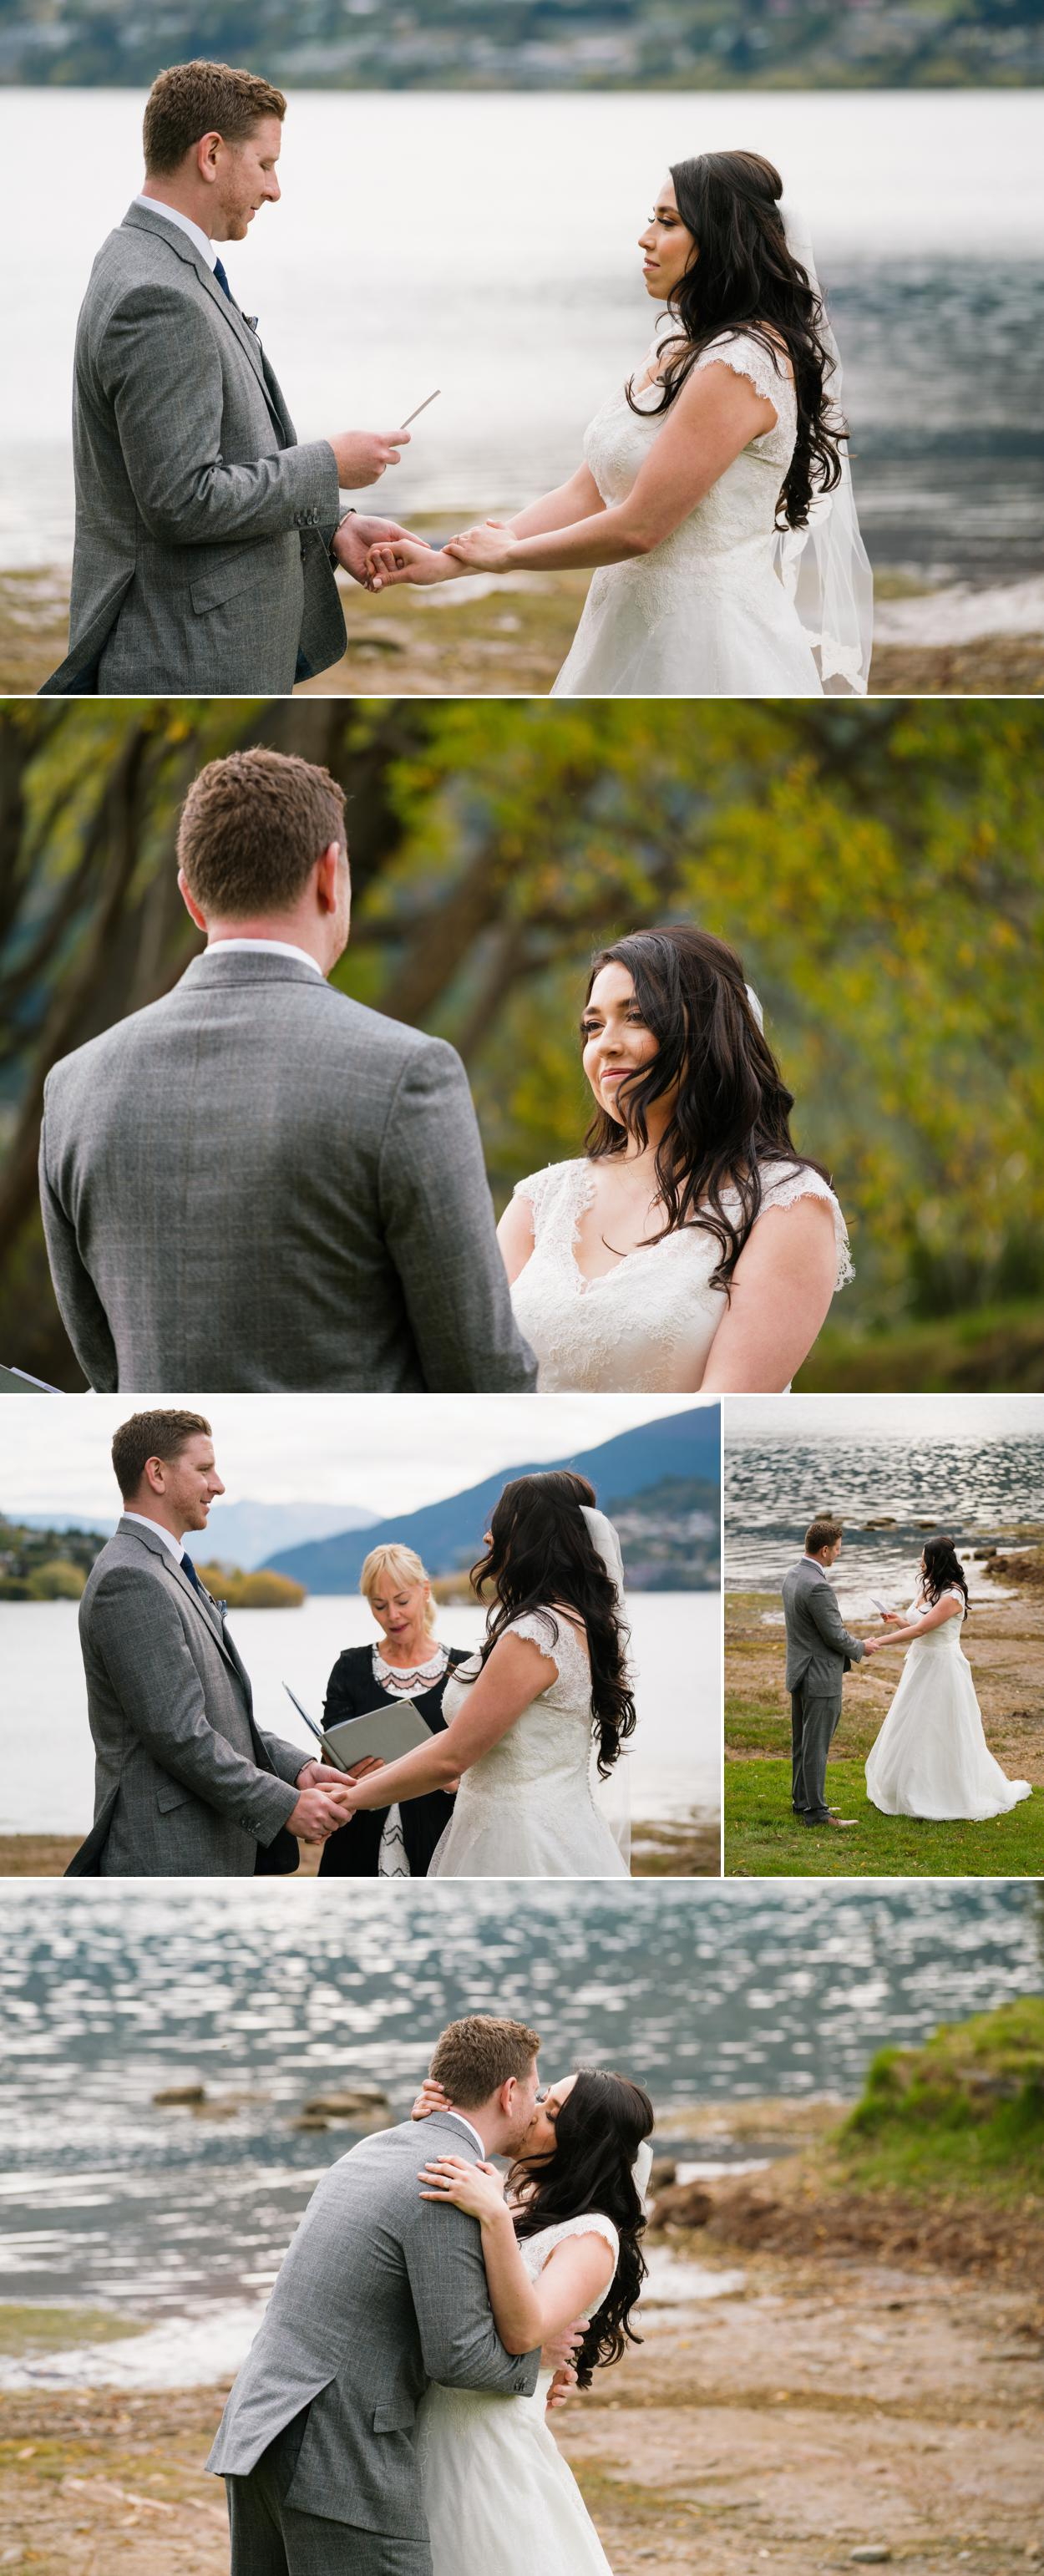 Queentown lake wedding ceremony